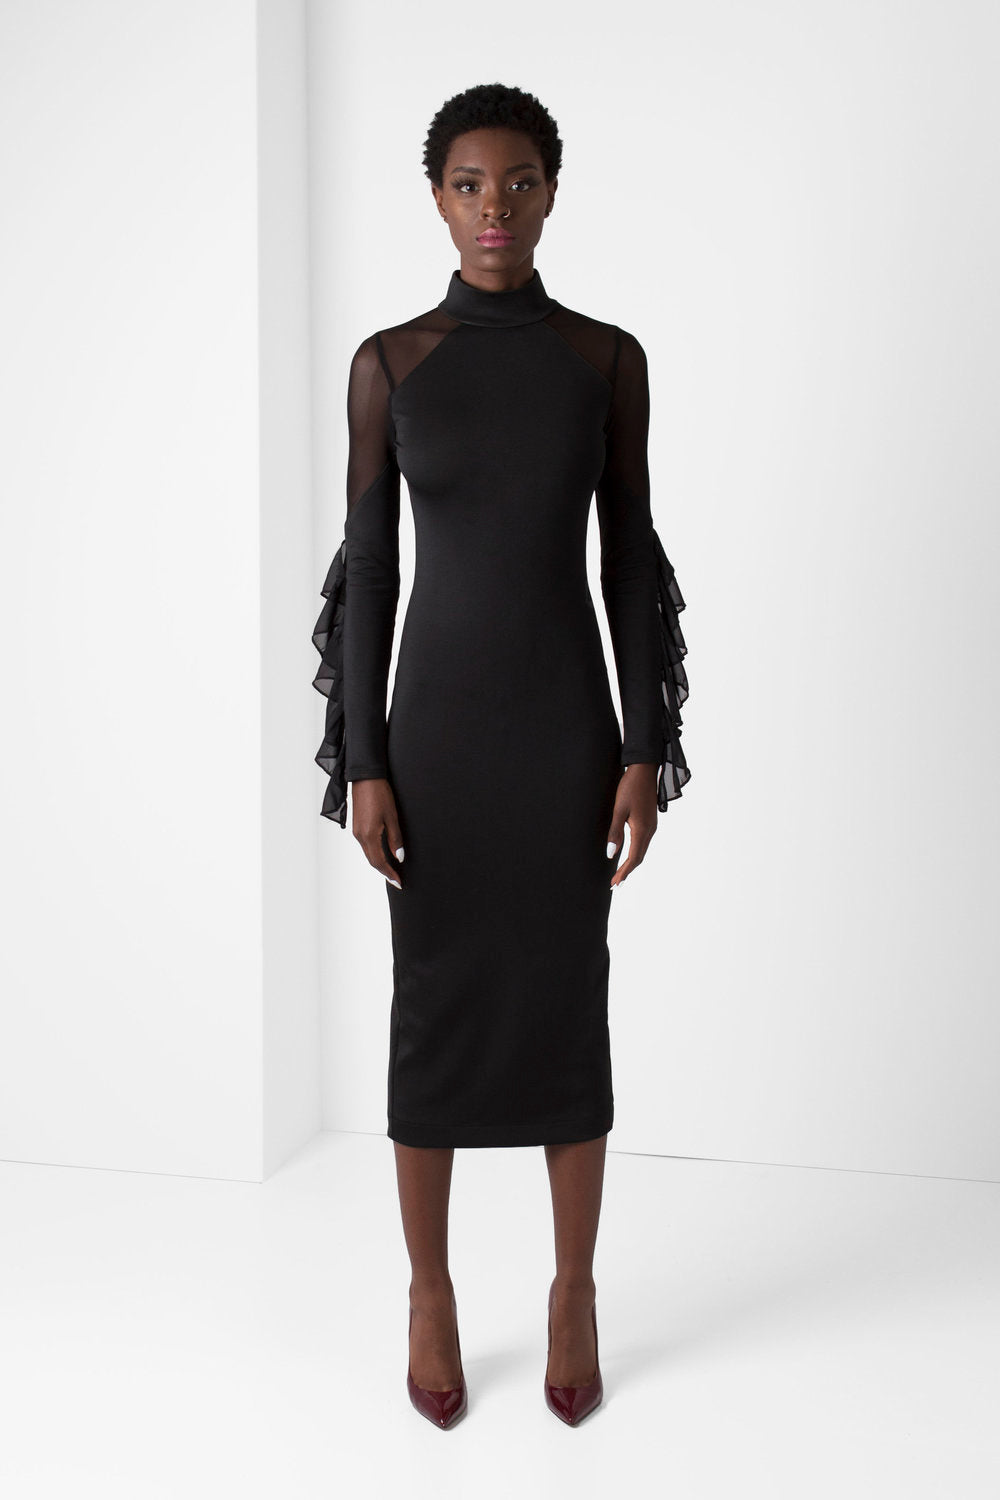 Black Long Sleeve BodyCon Pencil Dress w/ Mesh Shoulders - pacorogiene